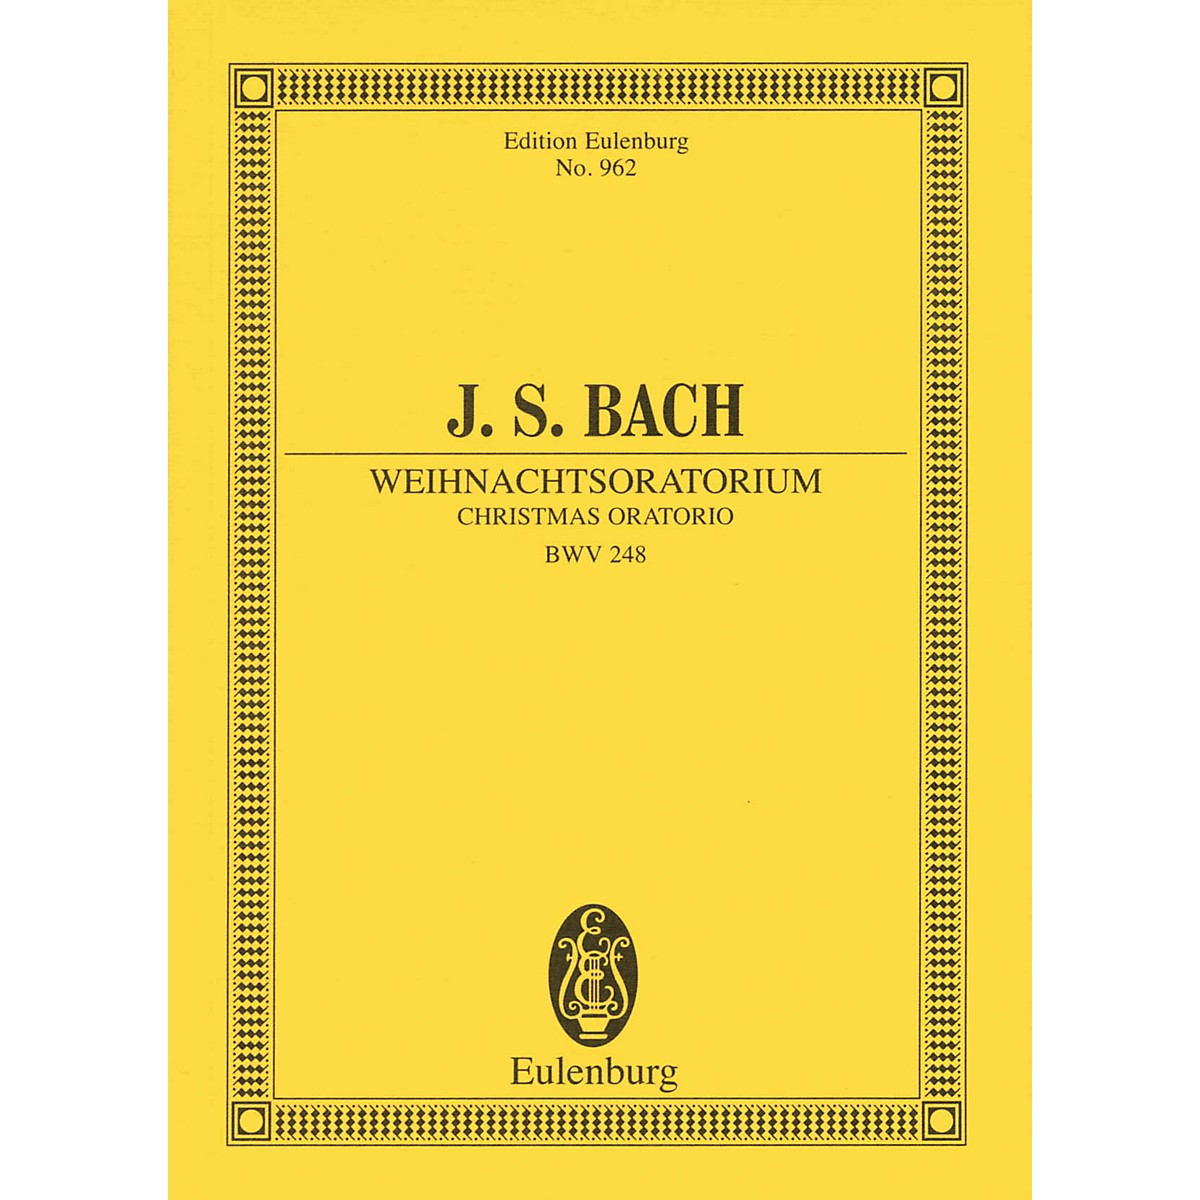 Eulenburg Christmas Oratorio, BWV 248 Study Score Composed by Johann Sebastian Bach Arranged by Arnold Schering